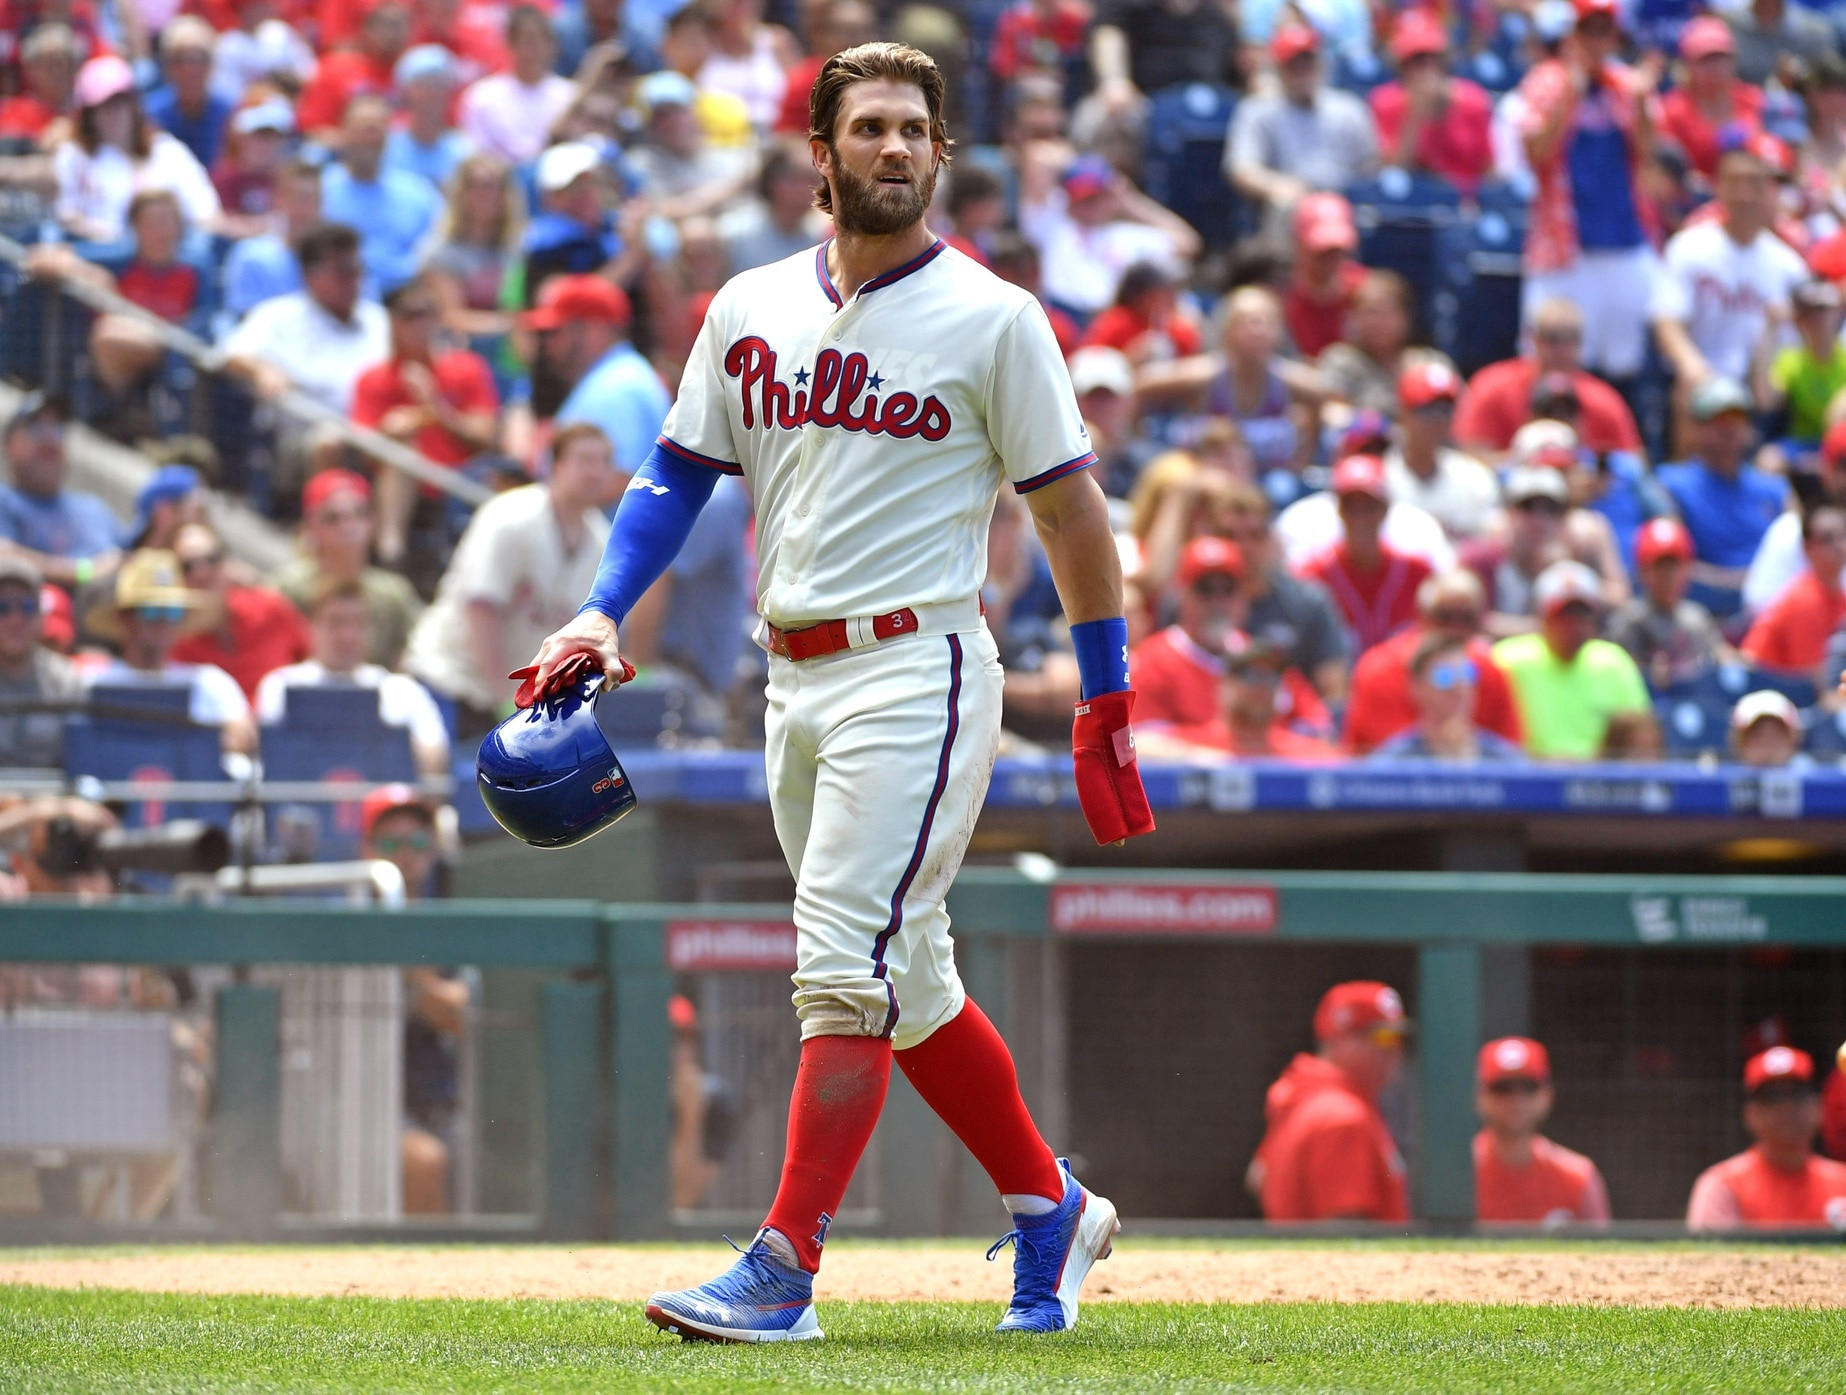 WATCH: Bryce Harper takes responsibility for Phillies firing coach